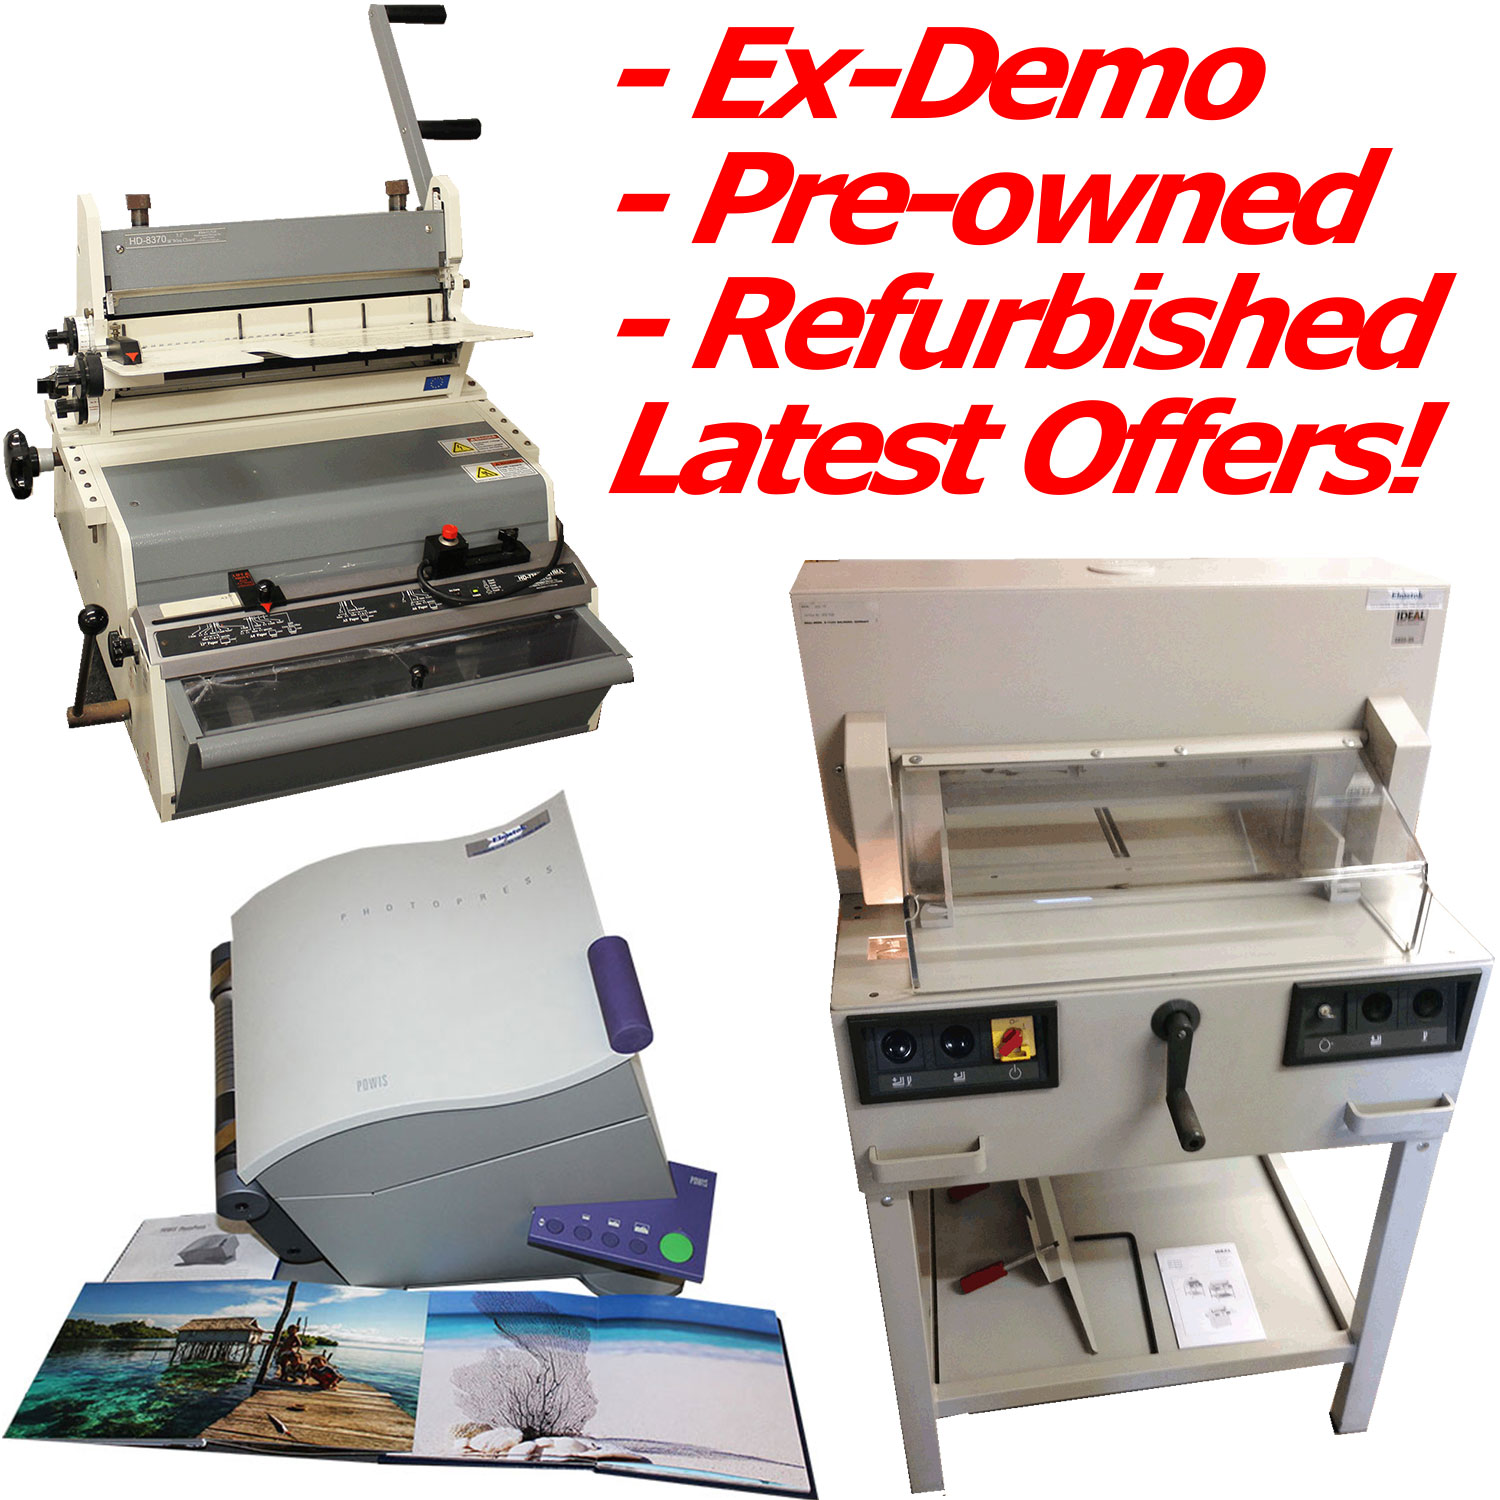 Used/Pre-Owned & ExDemo Machines